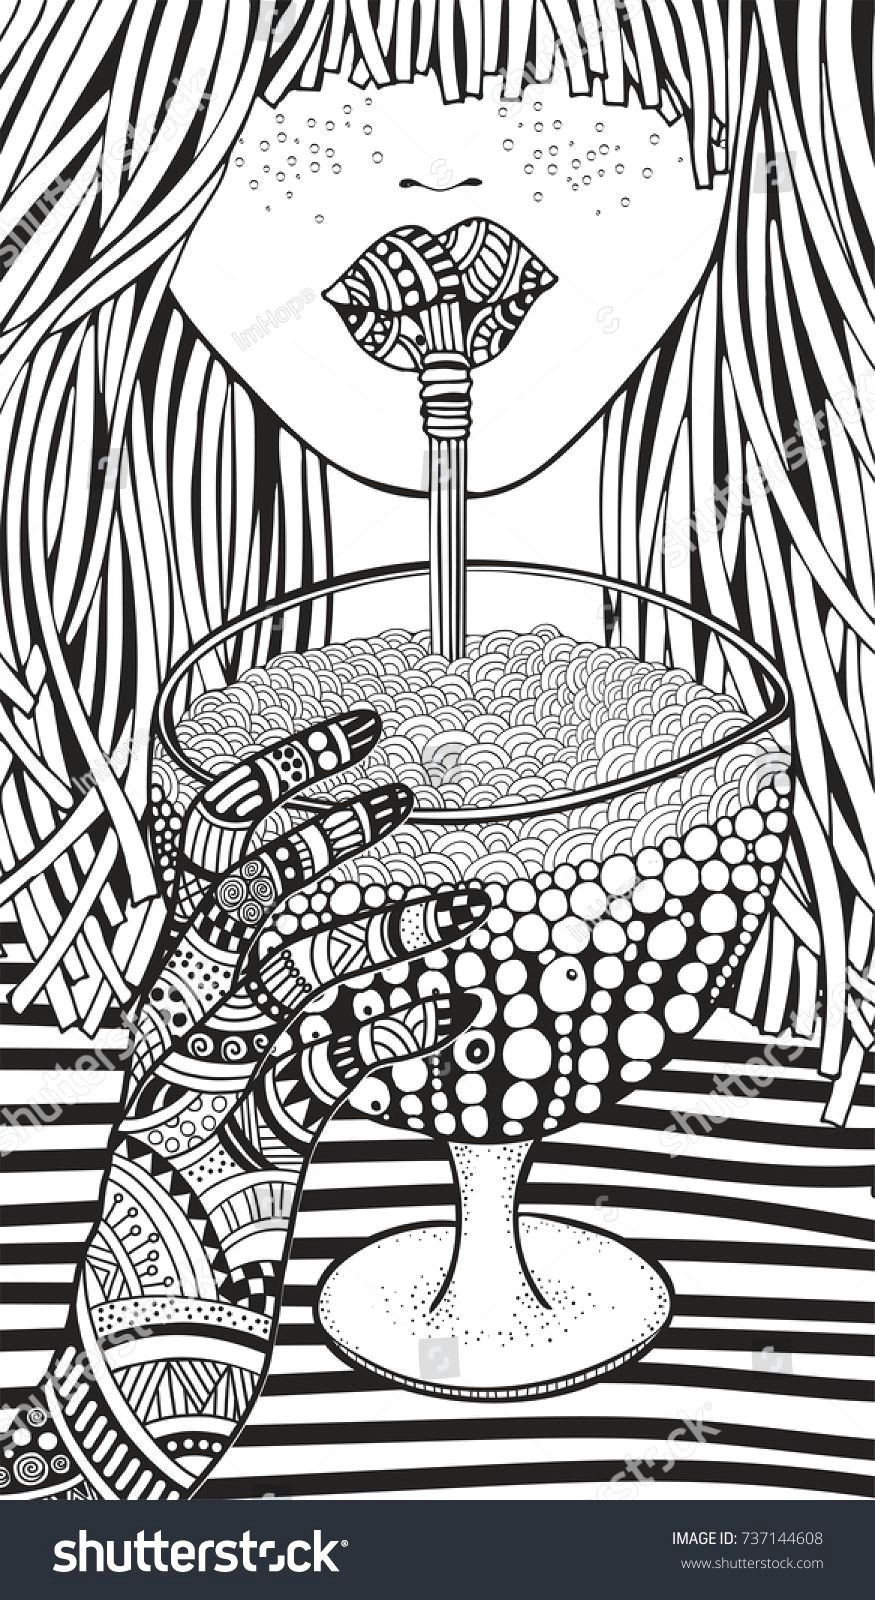 Little Girl Drawing Vine Cute Girl Drinking Wine or Lemonade Adult Coloring Book Page Young